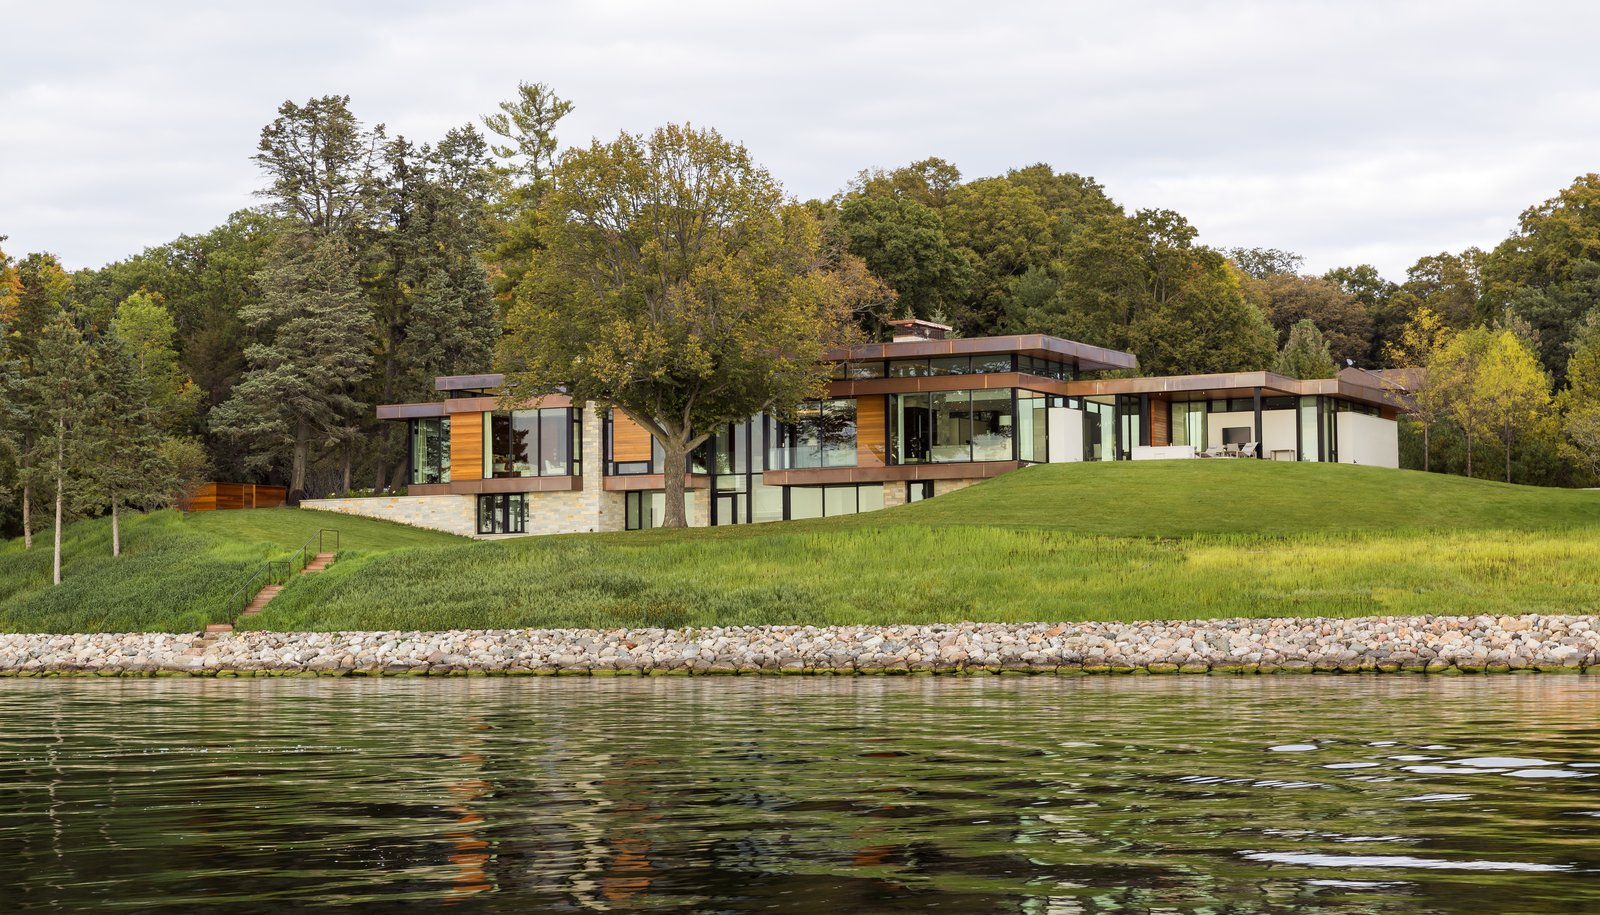 Exterior, Flat RoofLine, Metal Siding Material, House Building Type, Wood Siding Material, Stone Siding Material, Stucco Siding Material, and Metal Roof Material  Shoreline Residence by PKA Architecture